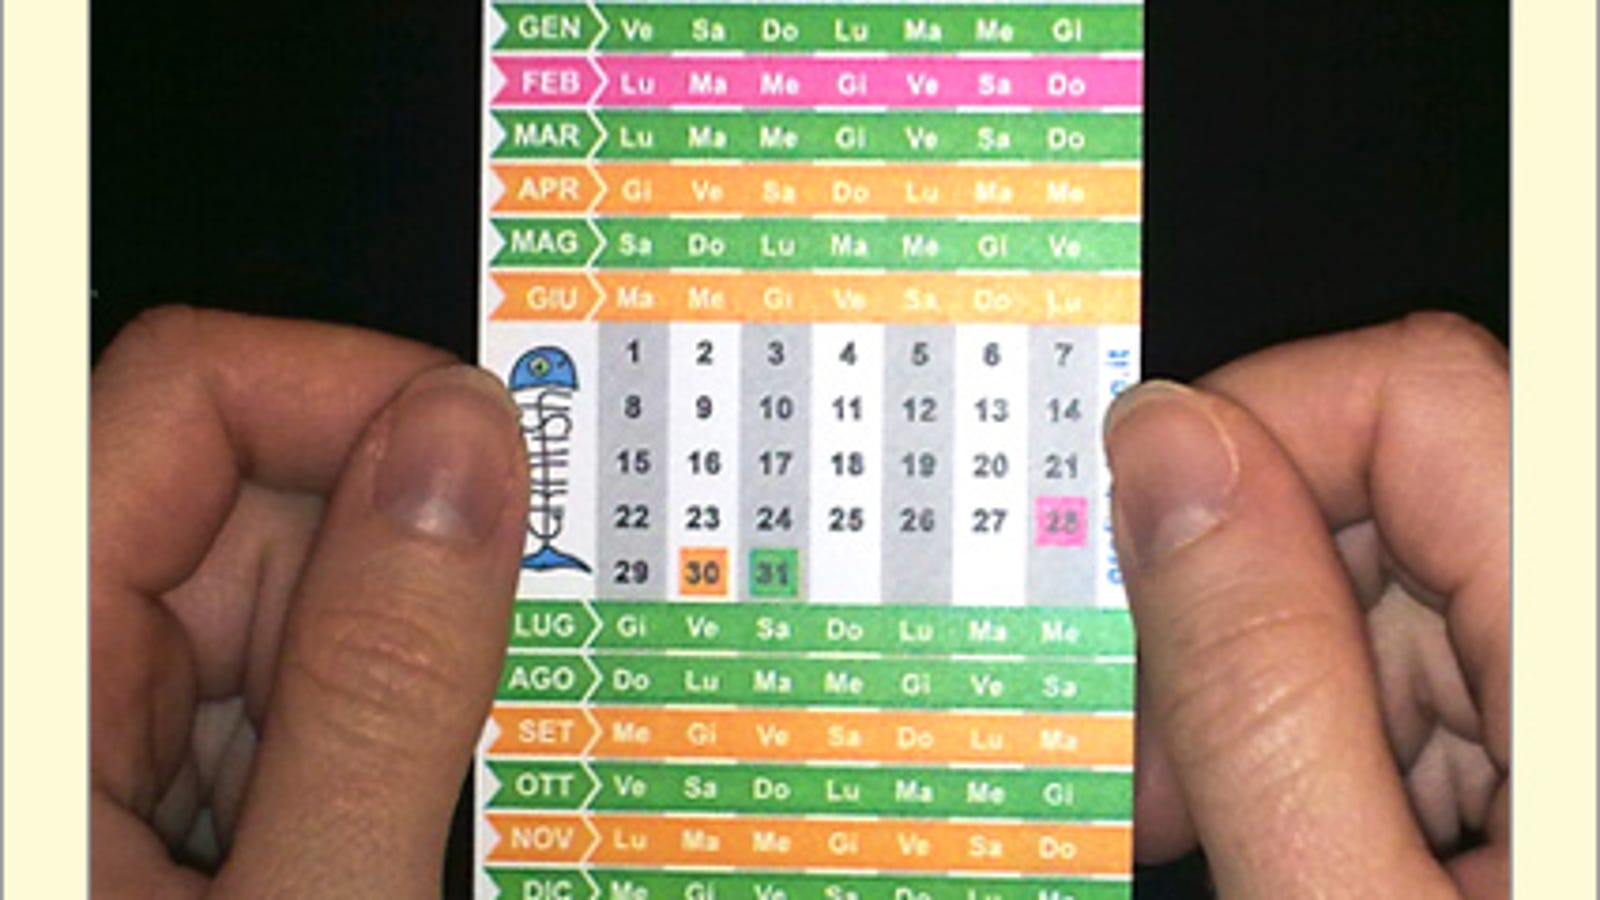 The Small Calendar Puts A Whole Year On A Business Card